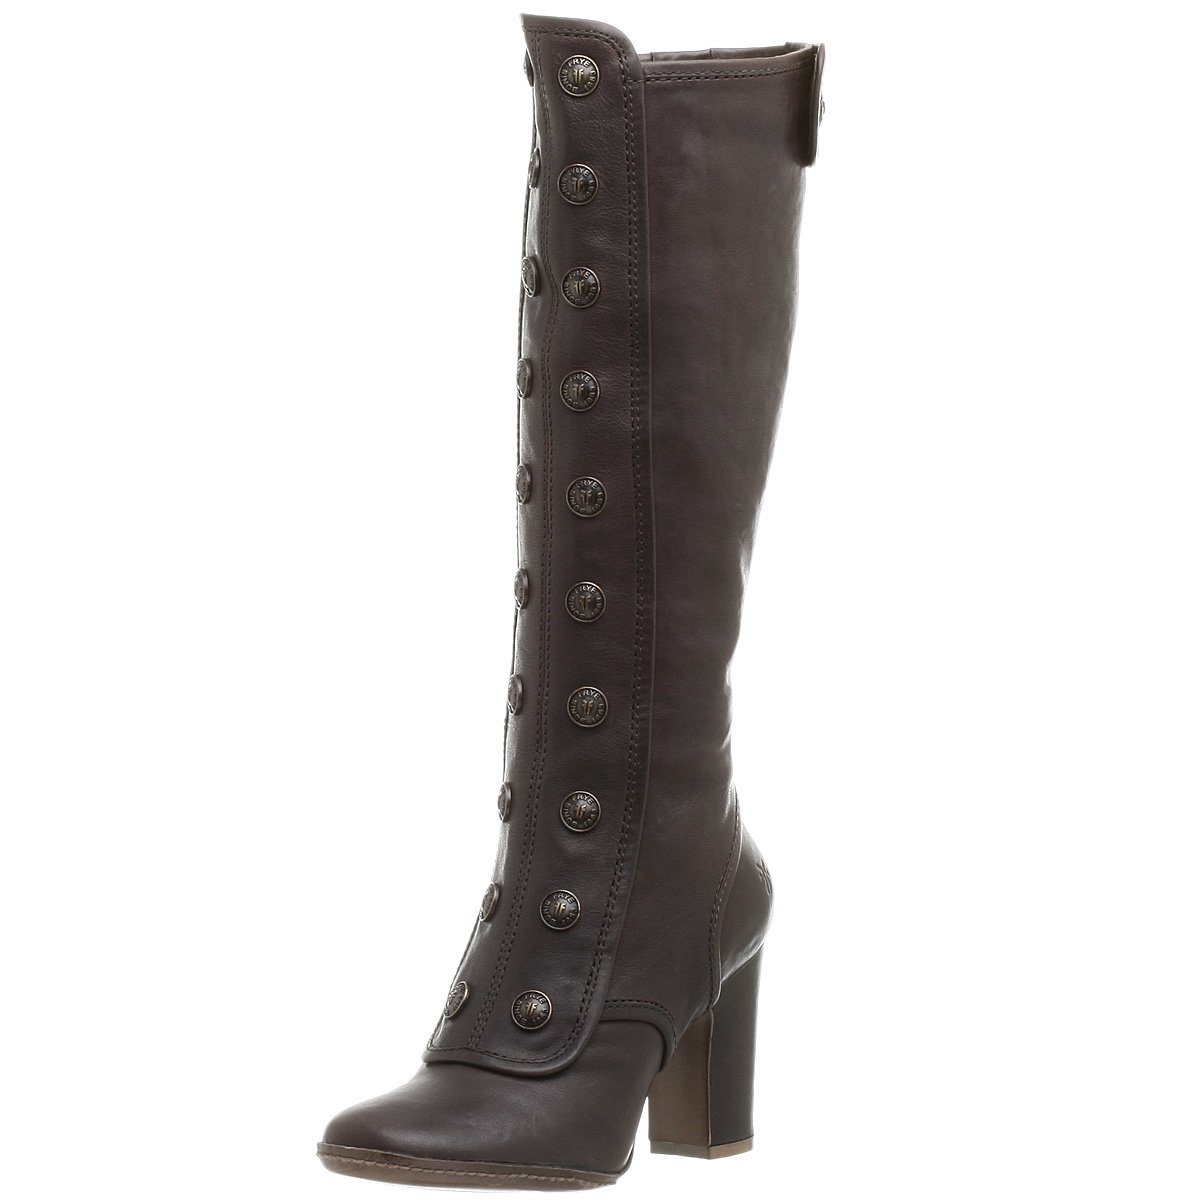 FRYE Adrienne Button Tall Boot - Free Overnight Shipping & Return Shipping: Endless.com :  retro military shoes boots